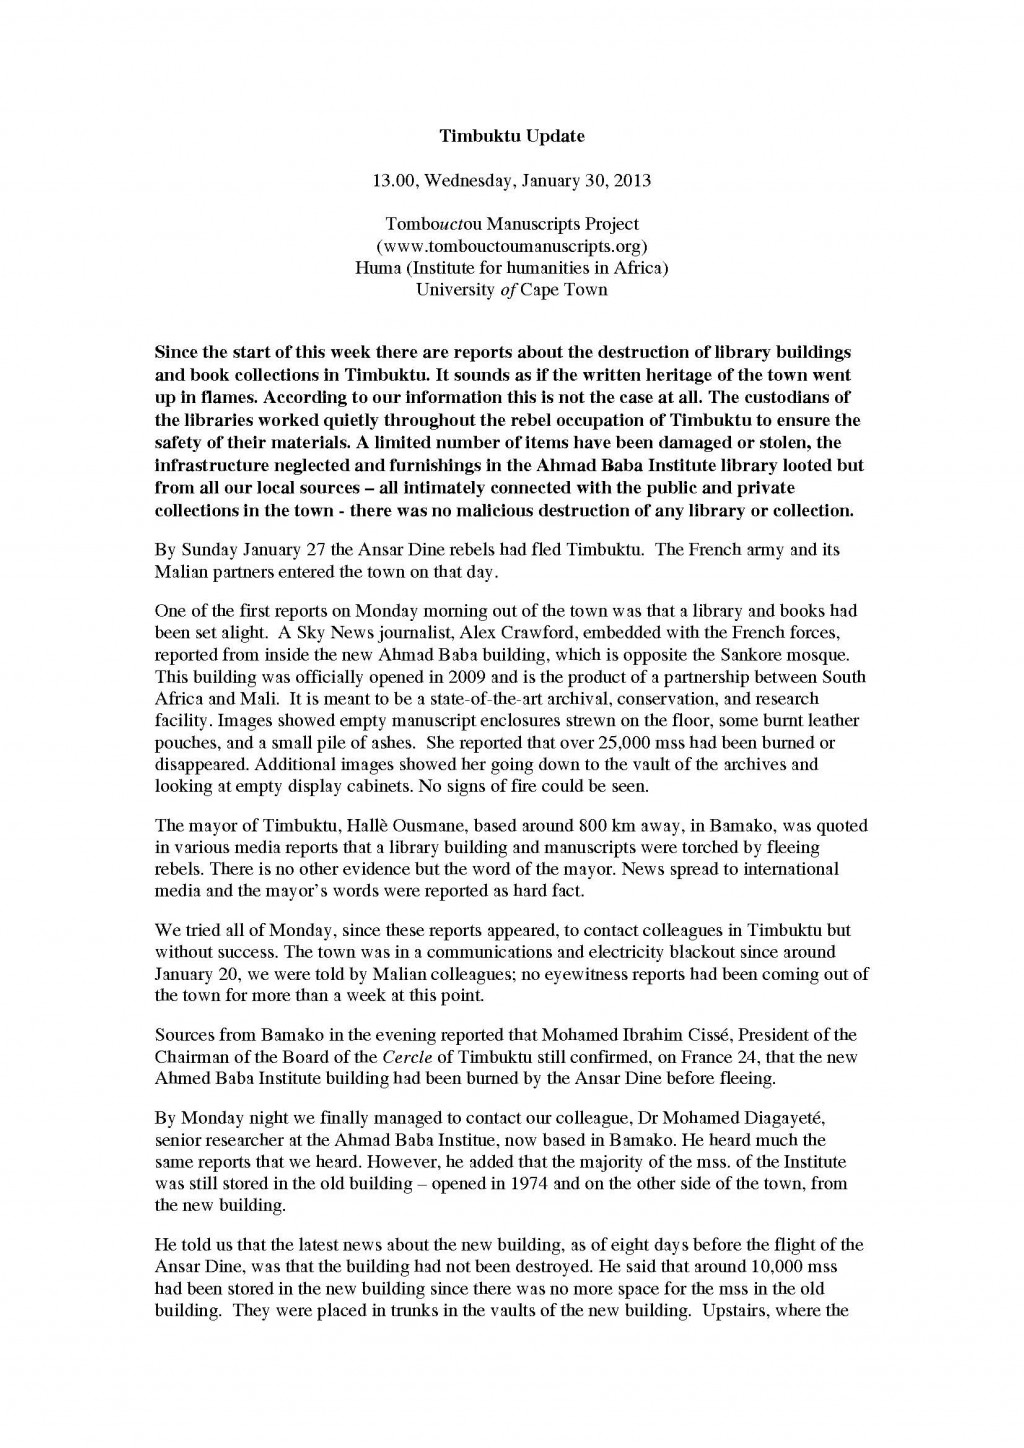 019 Essay Example Sample Uc Essays Good Examples University Personal Statement Cover Letter Business School Latest From Timbuktu Jan30 Pa For Undergraduate Pdf Medical Imposing Prompt 1 6 3 Large